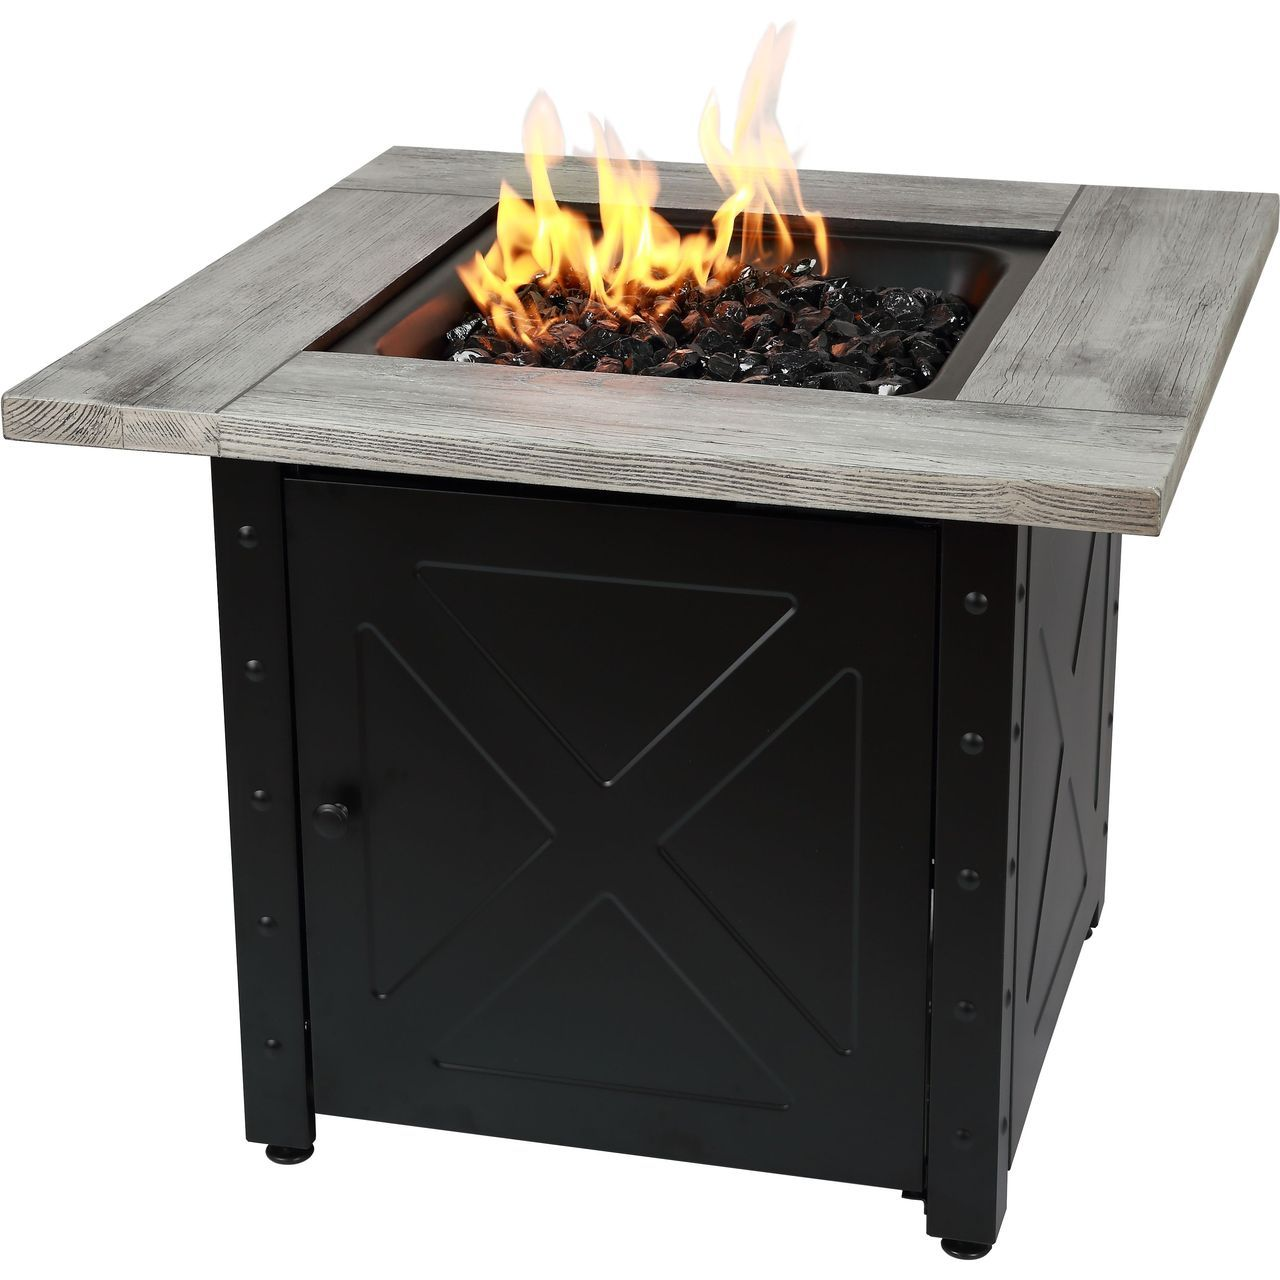 "Endless Summer Mason 30"" Gas Fire Pit With Printed Wood Resin Mantel"